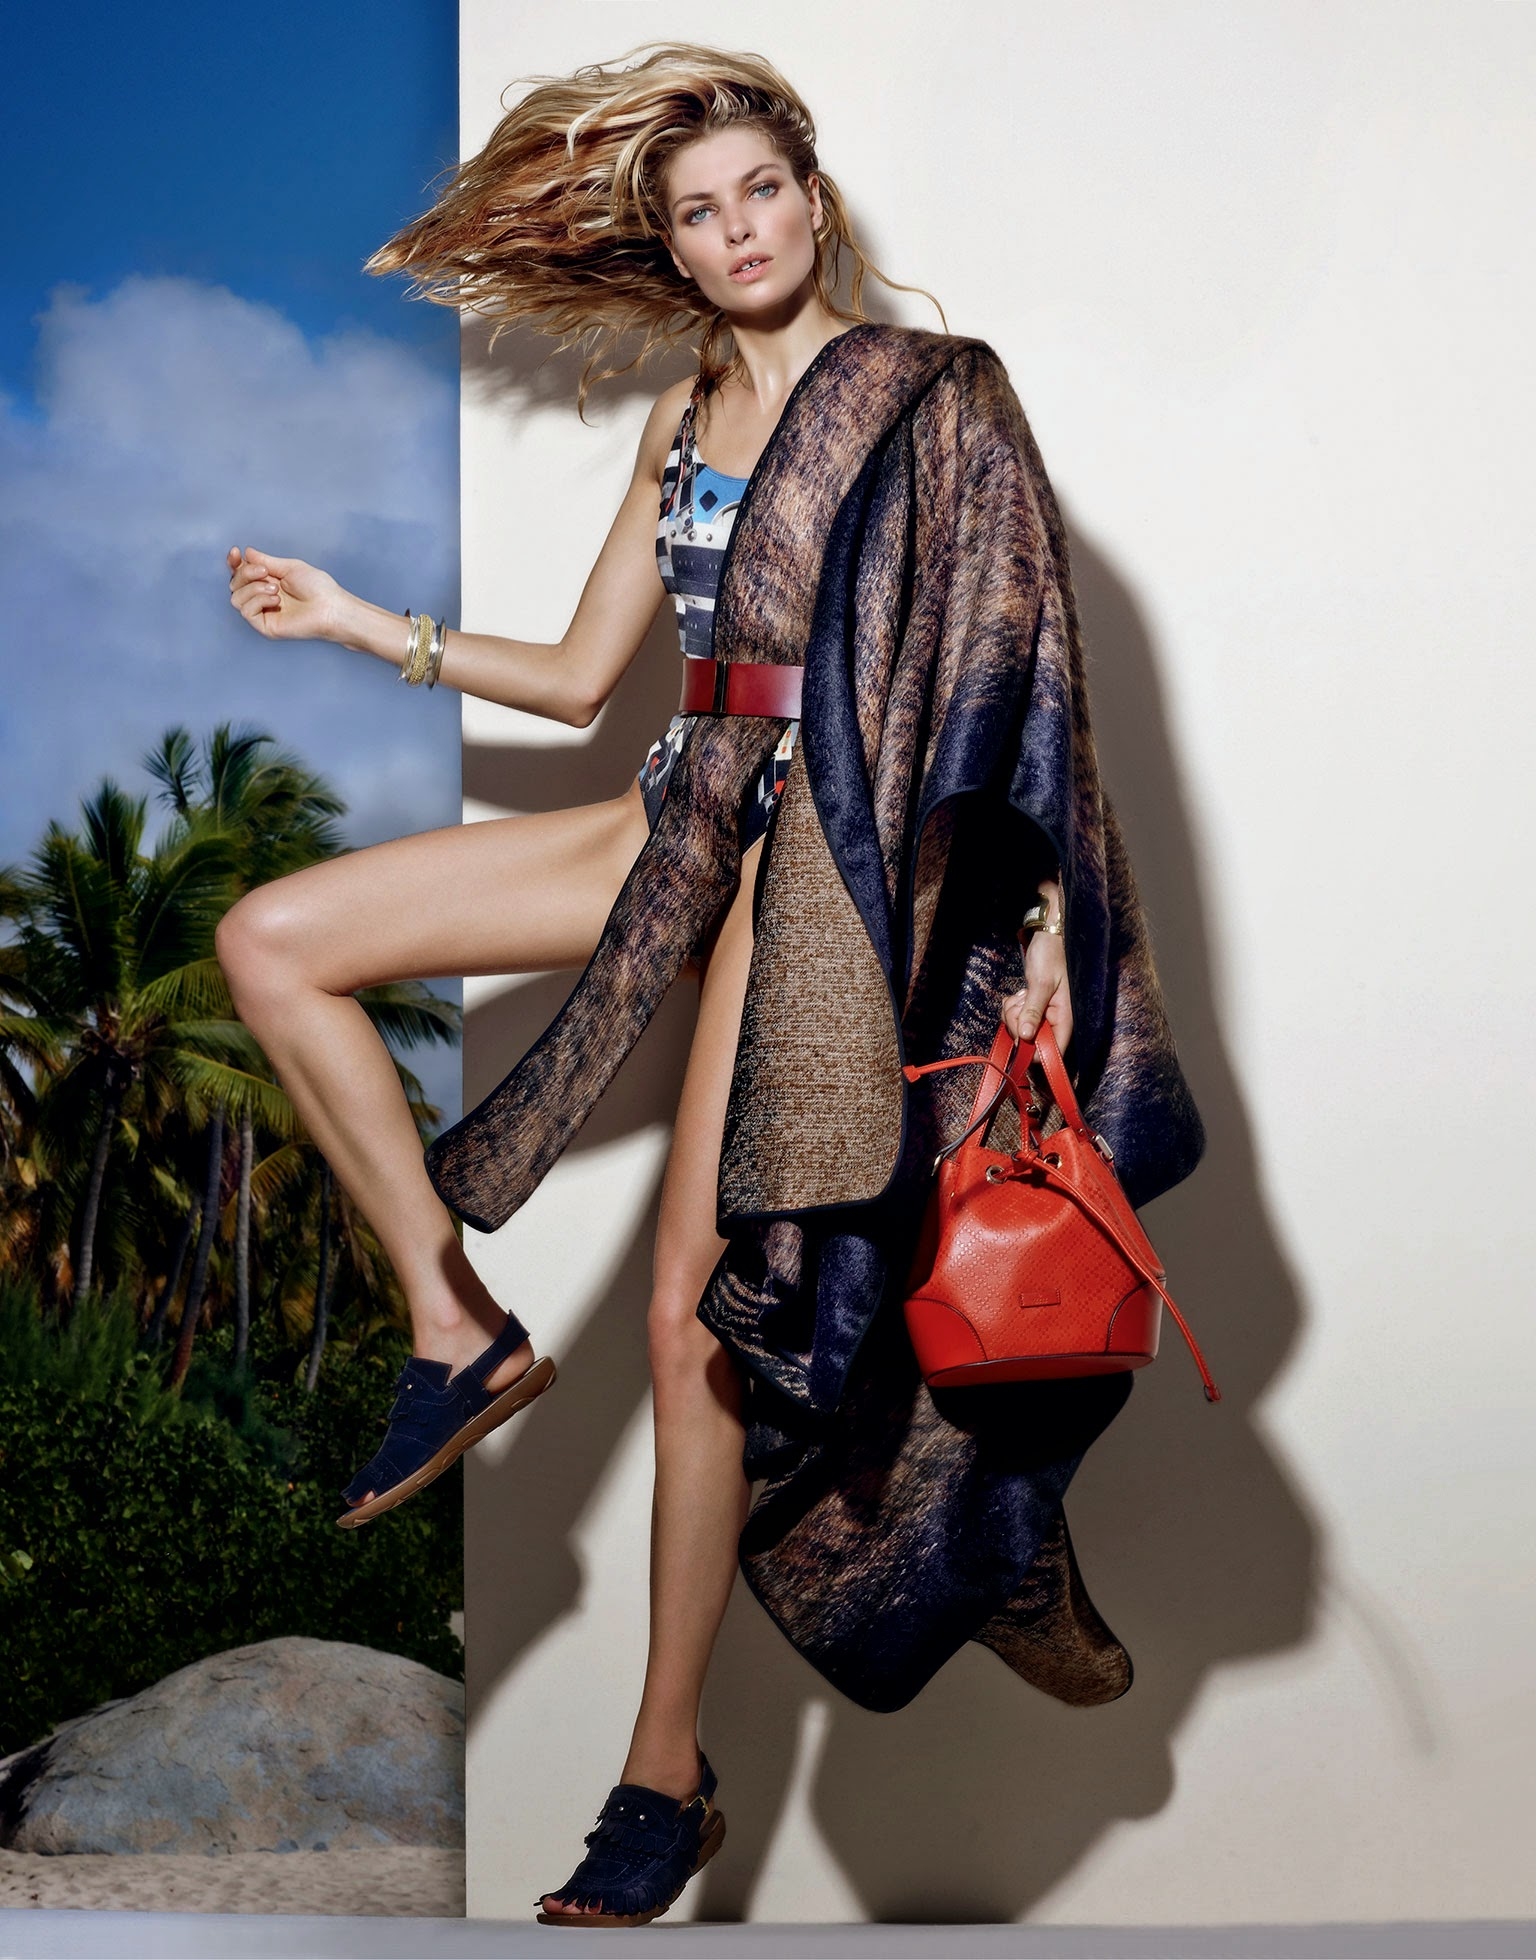 jessica-hart-by-chris-colls-for-porter-magazine-editorial-the-impression-summer-2-2014-02